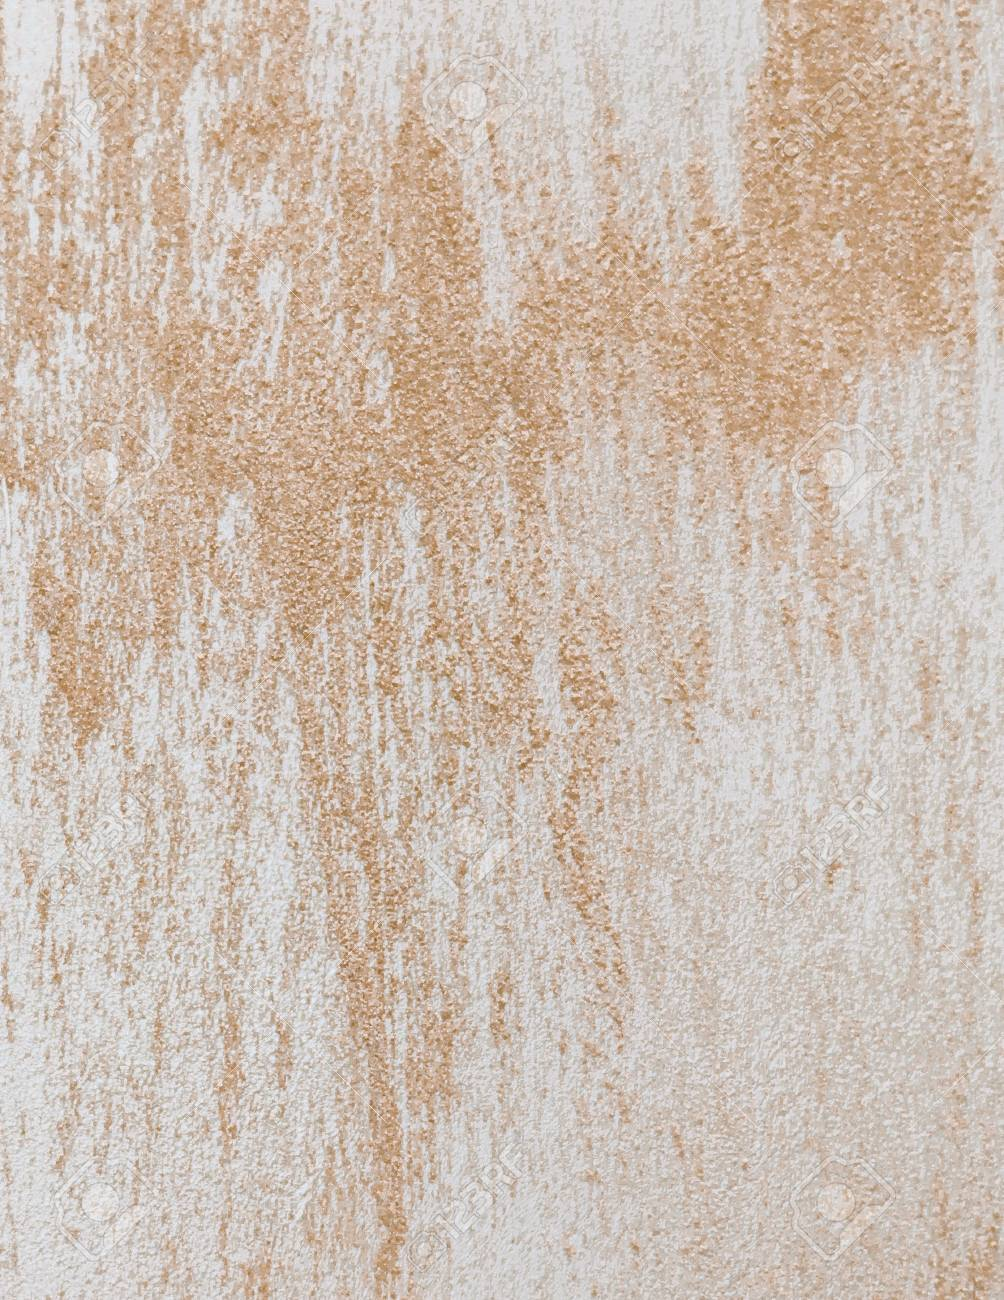 Wall Painted With Paint Sea Sand Texture Decorative Wall Covering